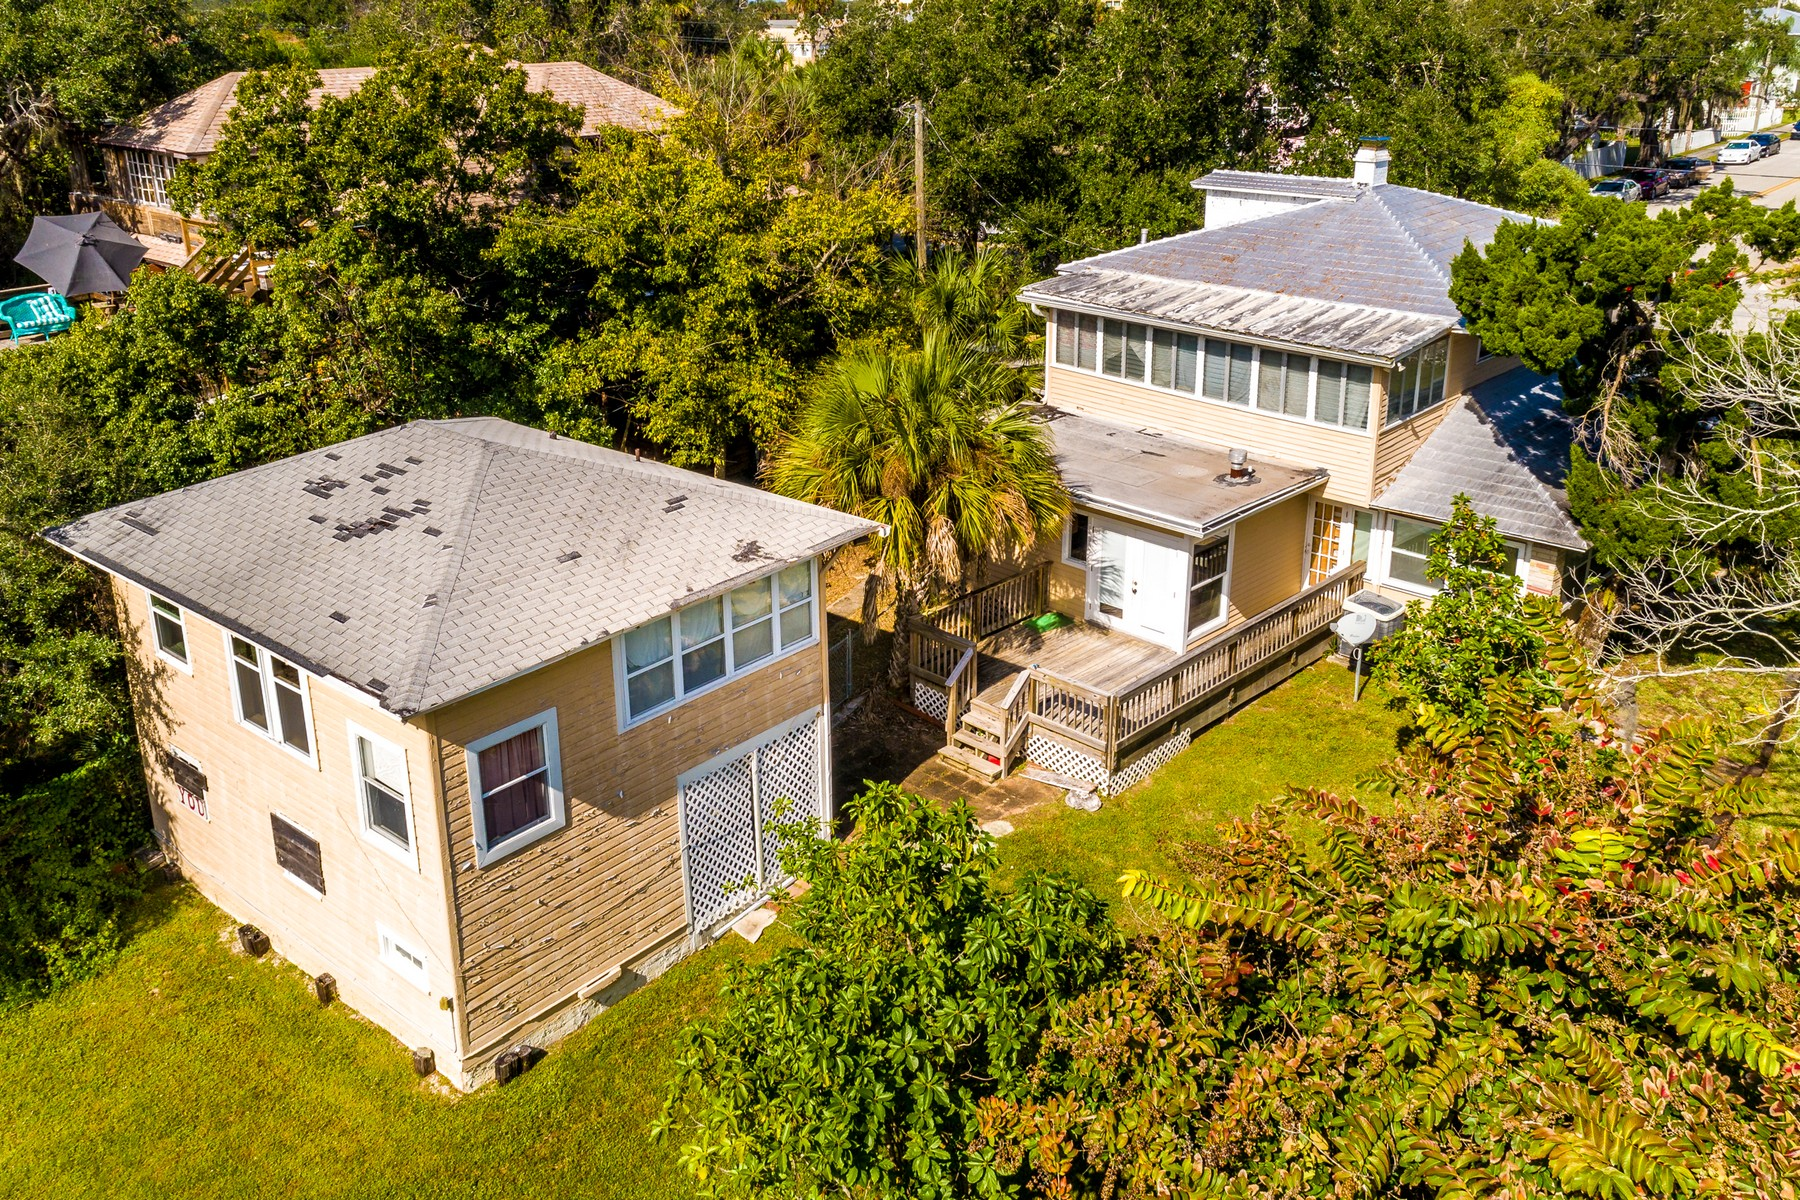 Single Family Homes for Sale at Two Waterfront Properties in Vibrant, Historic Downtown Melbourne 819 & 823 E Melbourne Avenue Melbourne, Florida 32901 United States